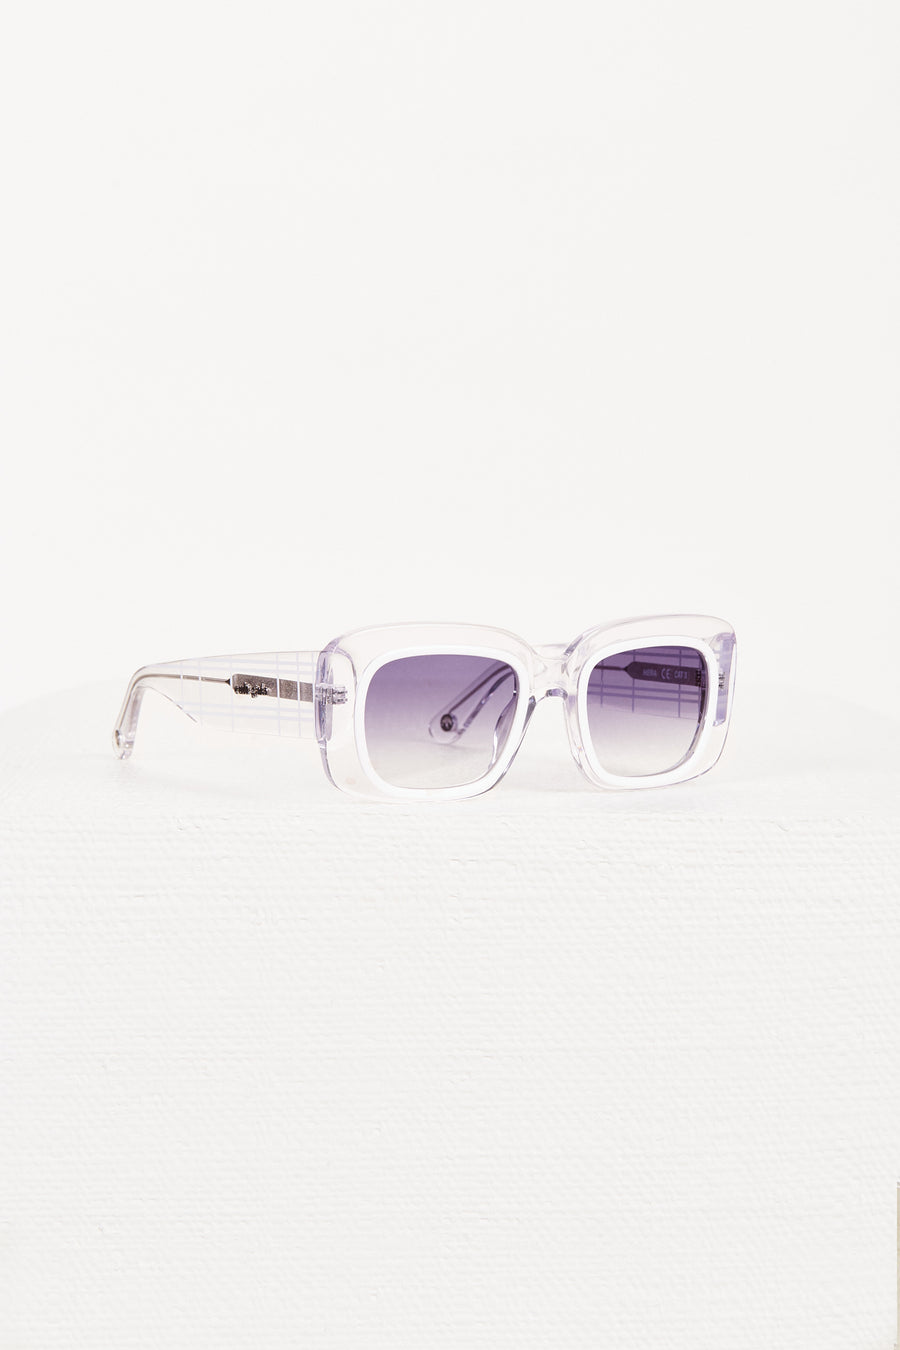 MEIRA SUNGLASSES - WHITE